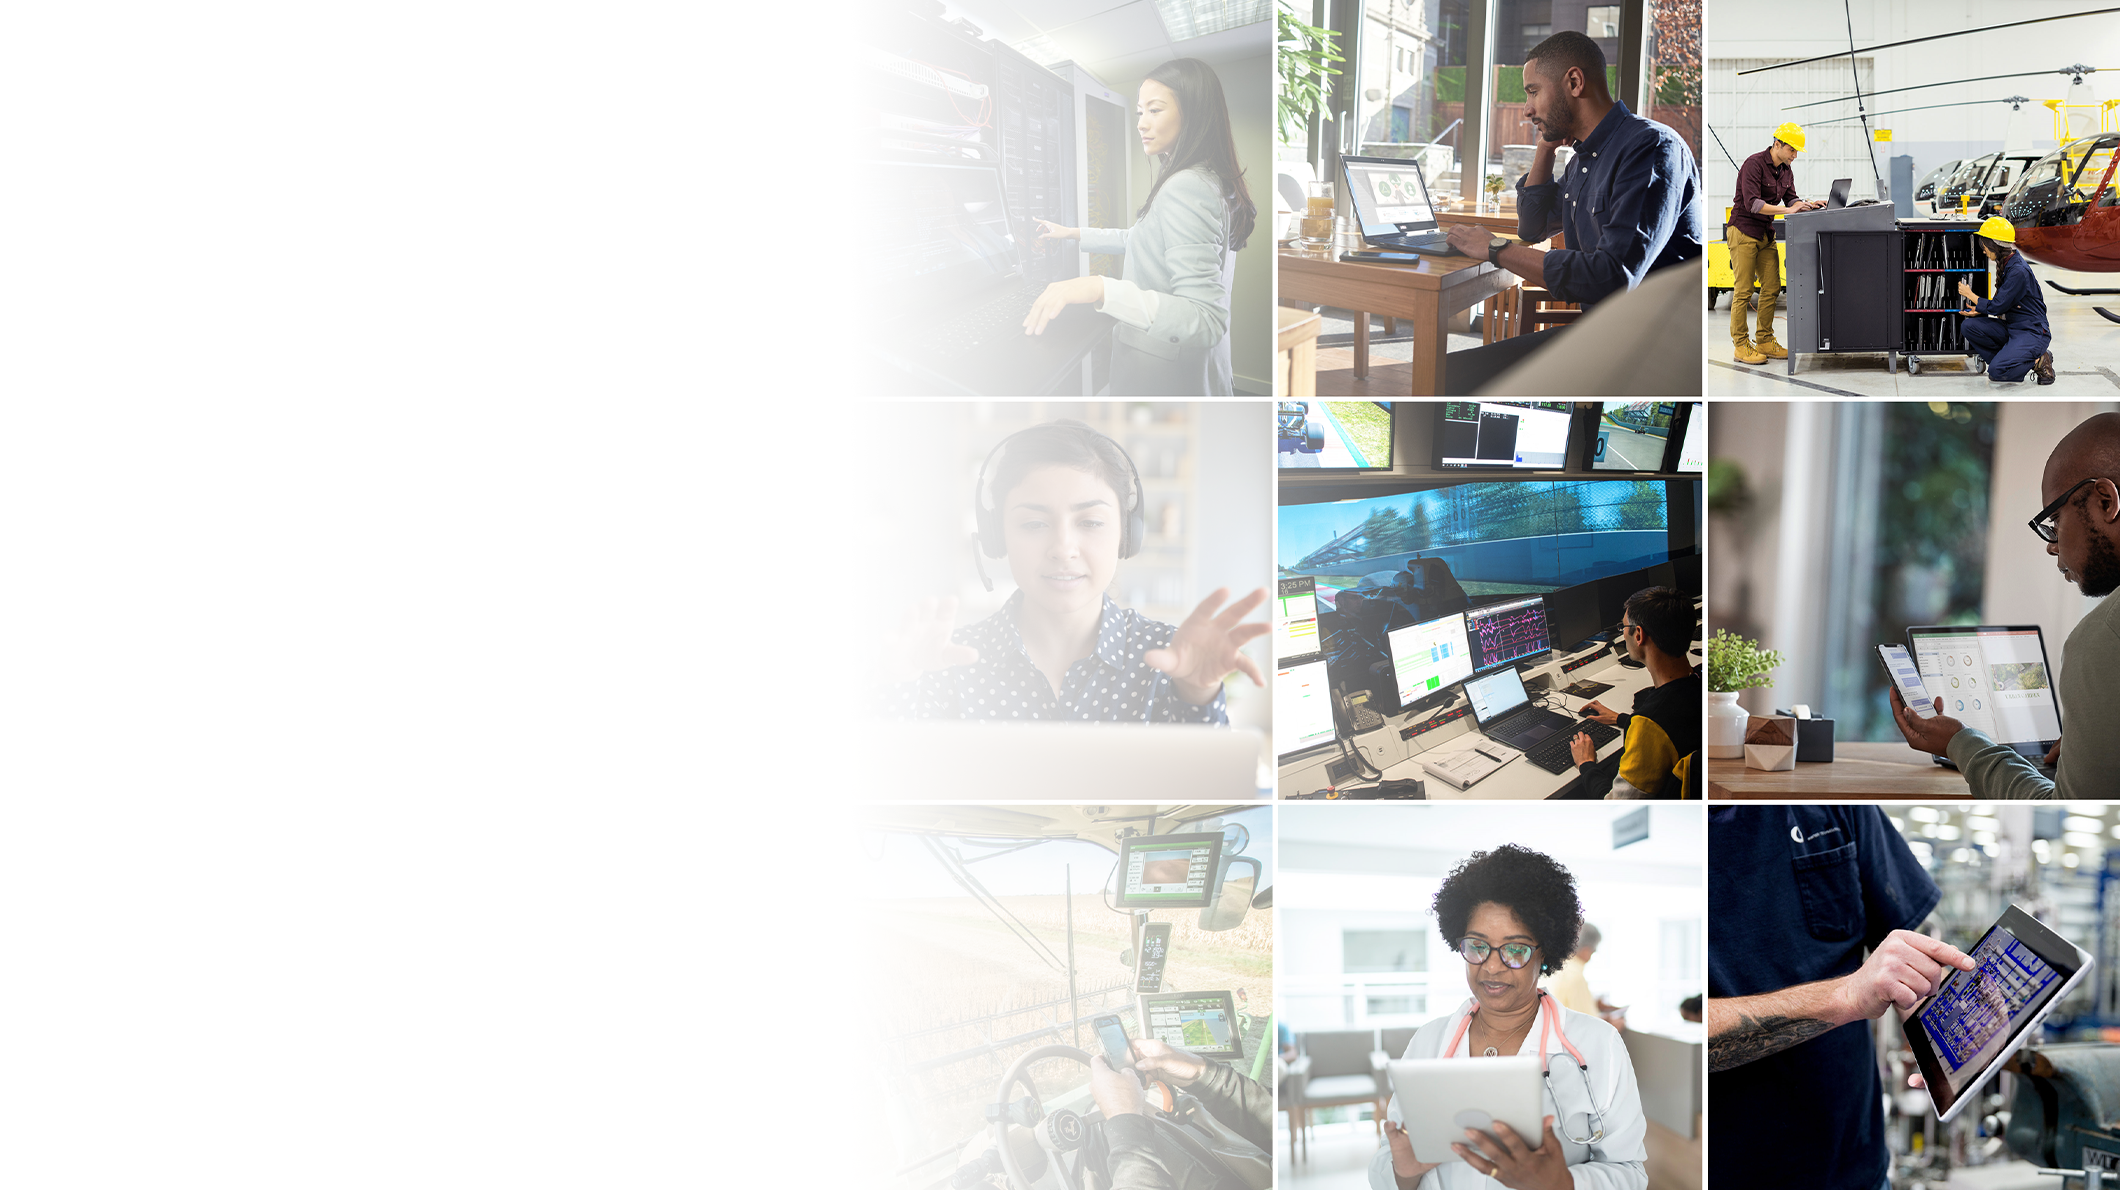 Multiple images of individuals who are using technology in different job settings.